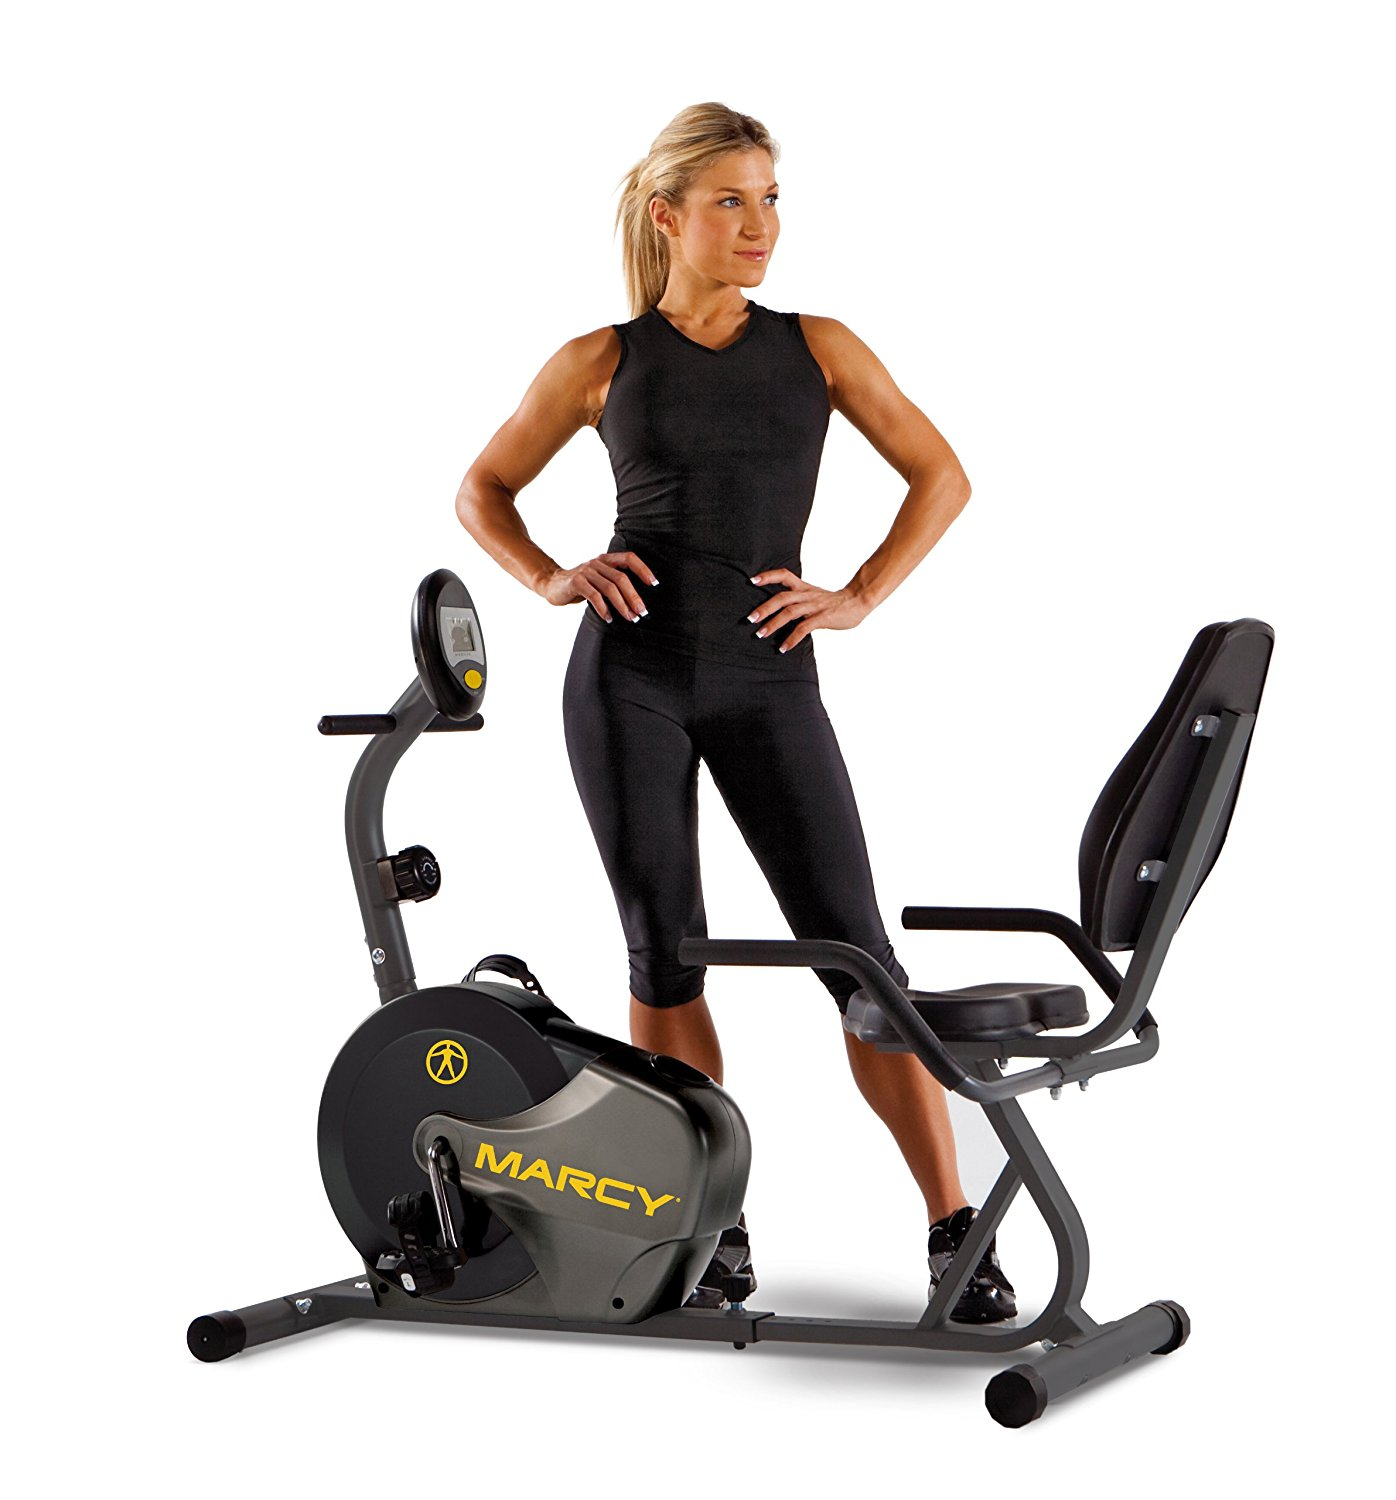 Marcy Adjustable Magnetic Upright Exercise Bike